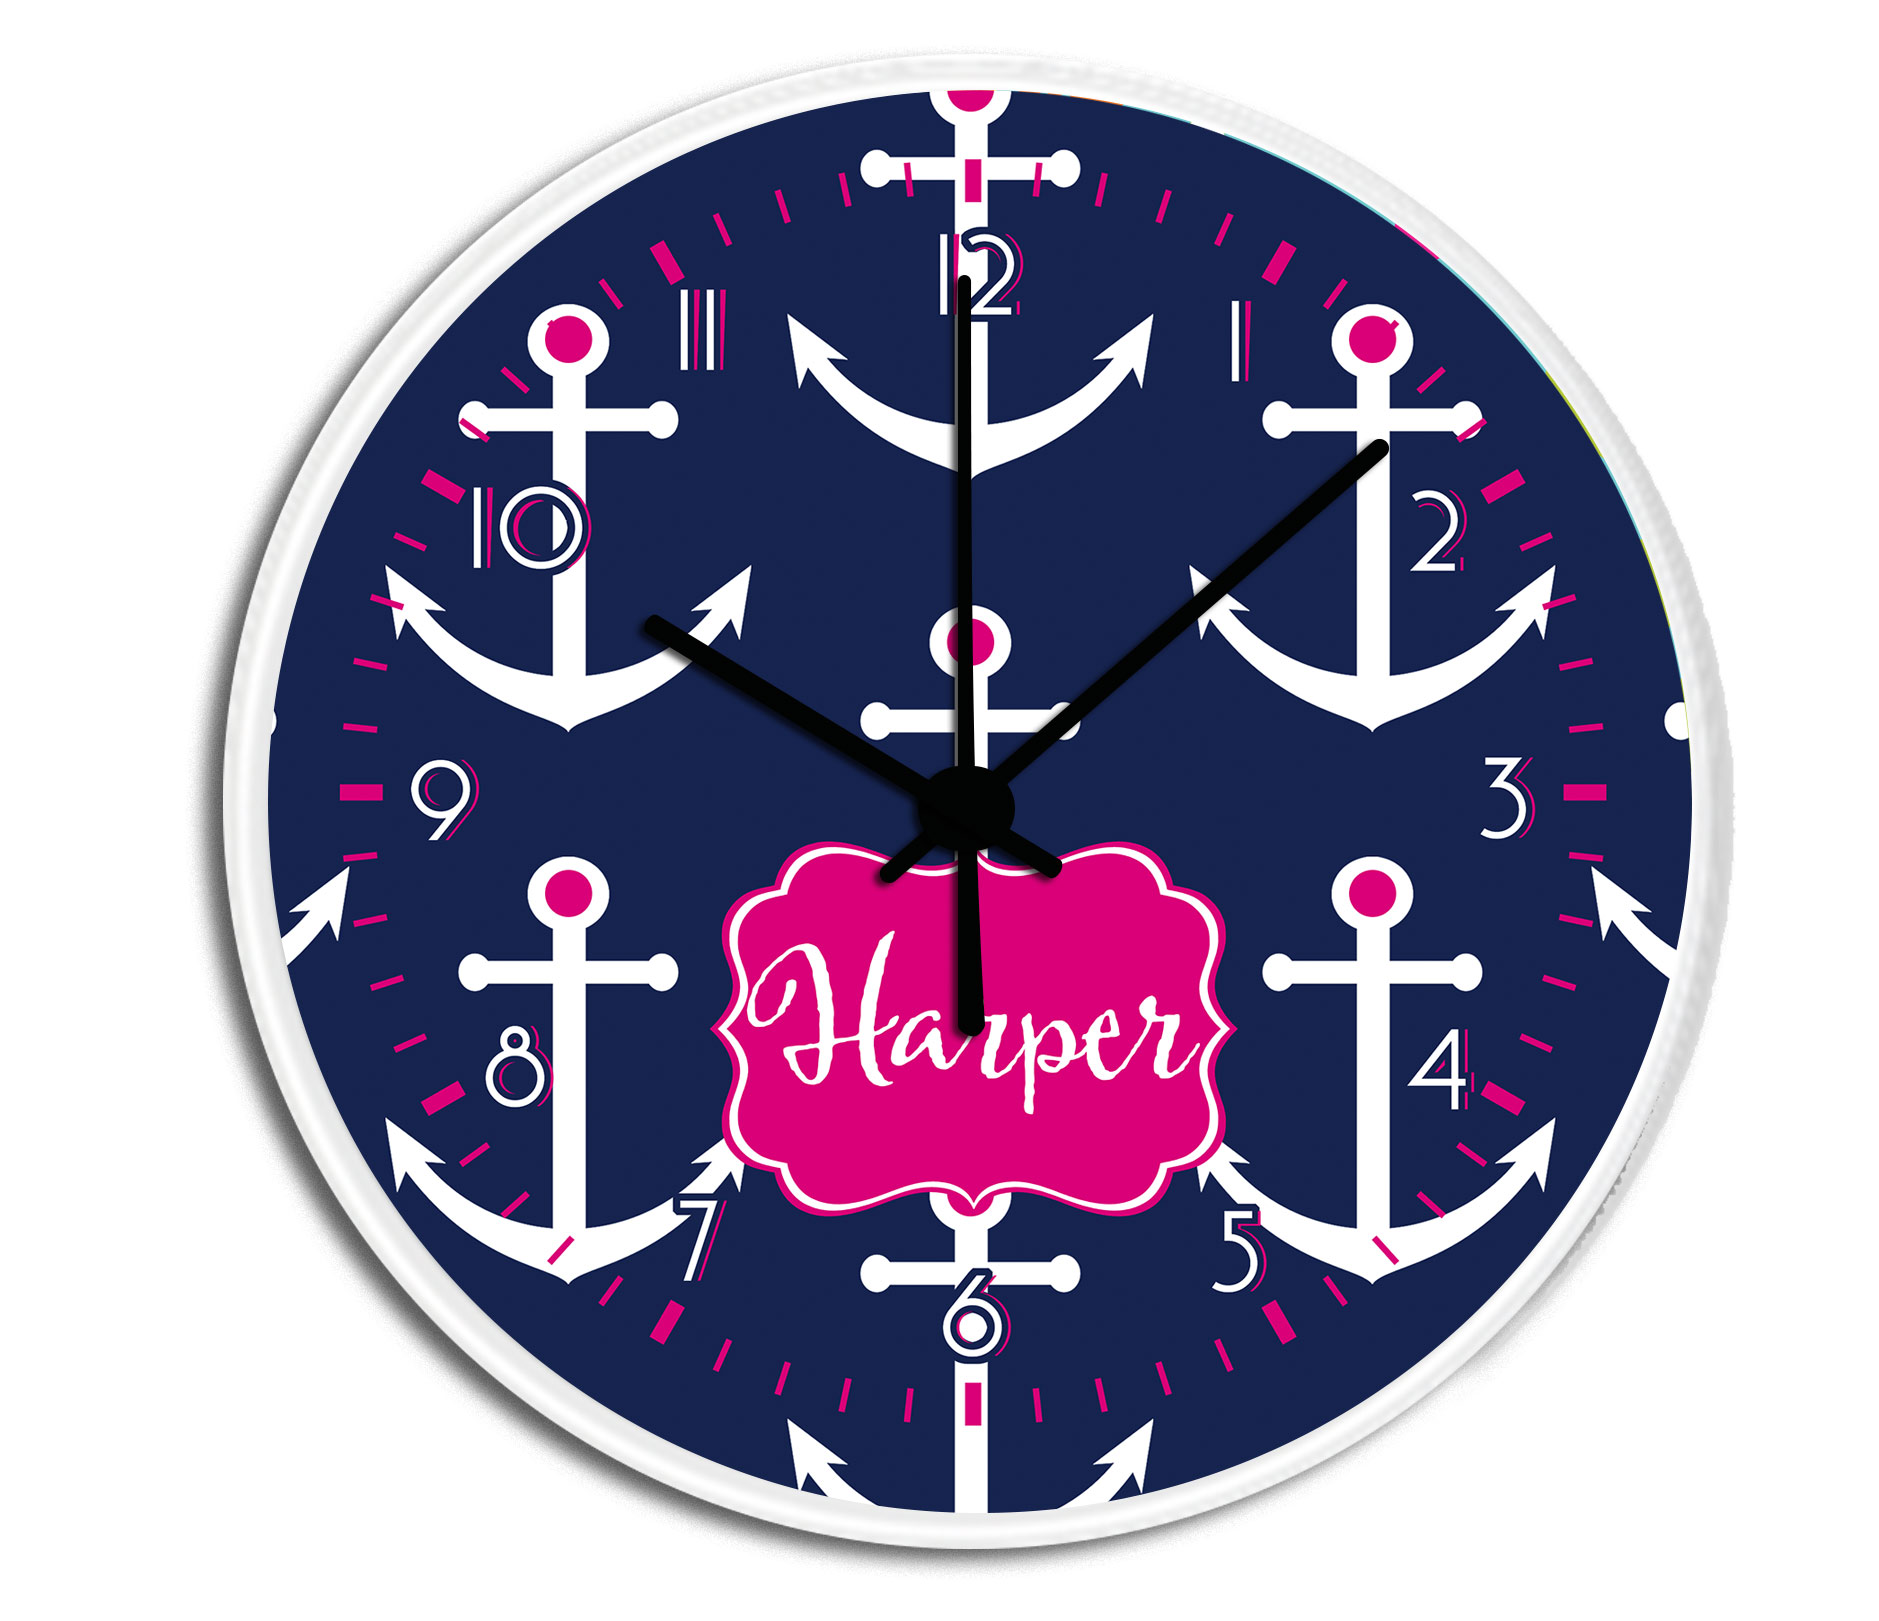 Custom anchor personalized decorative kitchen wall clock bedroom preppy anchors personalized decorative wall clock boys or girls personalized clock amipublicfo Choice Image